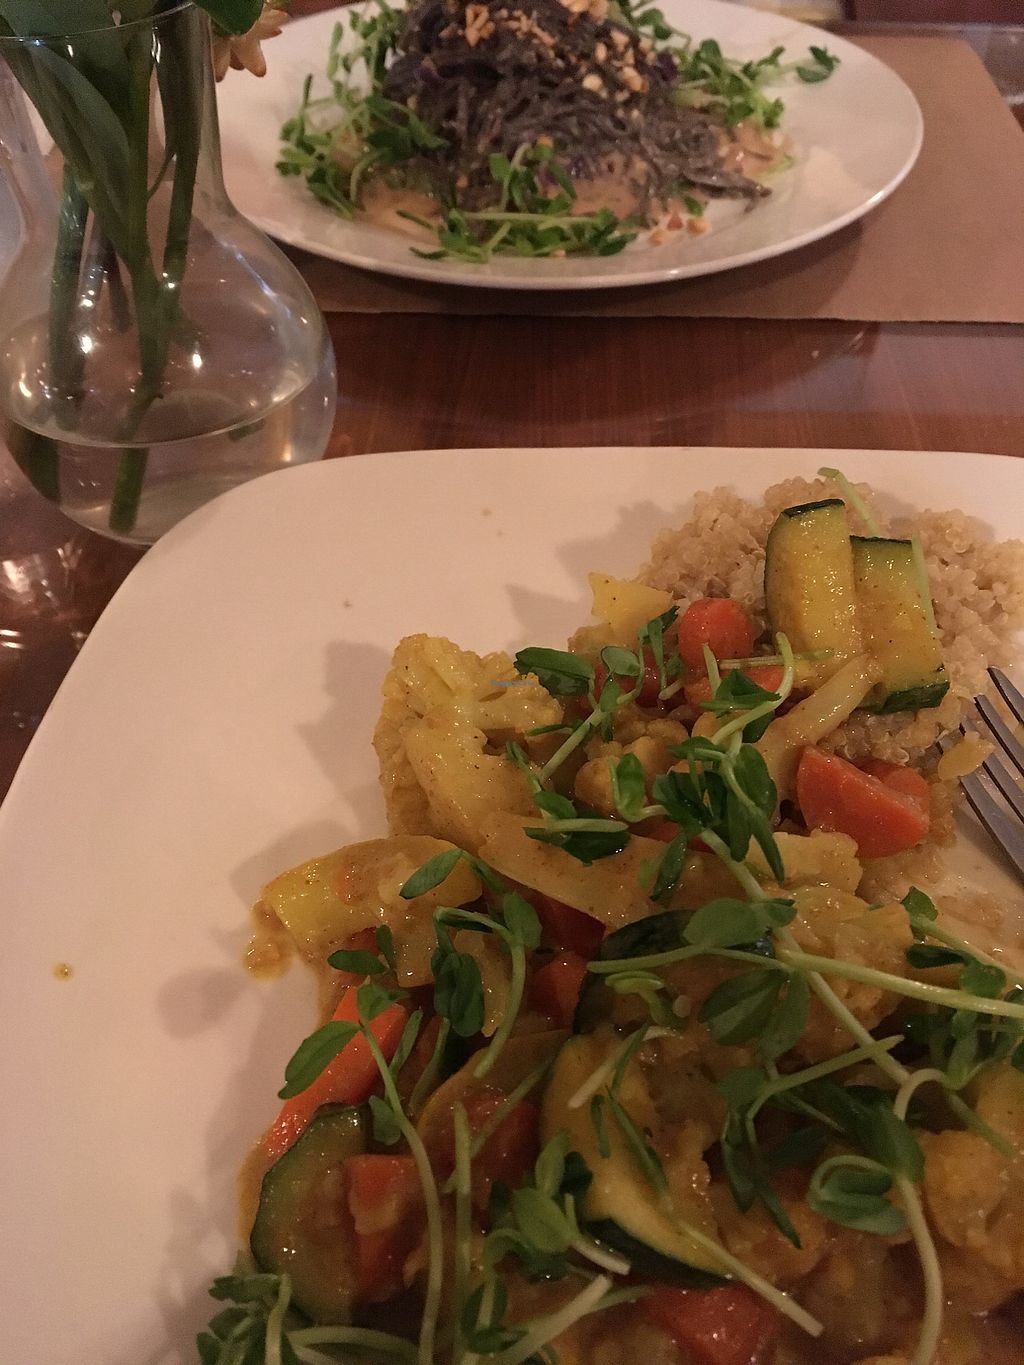 "Photo of Good Earth Organic Eatery  by <a href=""/members/profile/Philhower"">Philhower</a> <br/>vegan Thai yellow curry and black bean pasta with peanut sauce <br/> August 6, 2017  - <a href='/contact/abuse/image/32616/289494'>Report</a>"